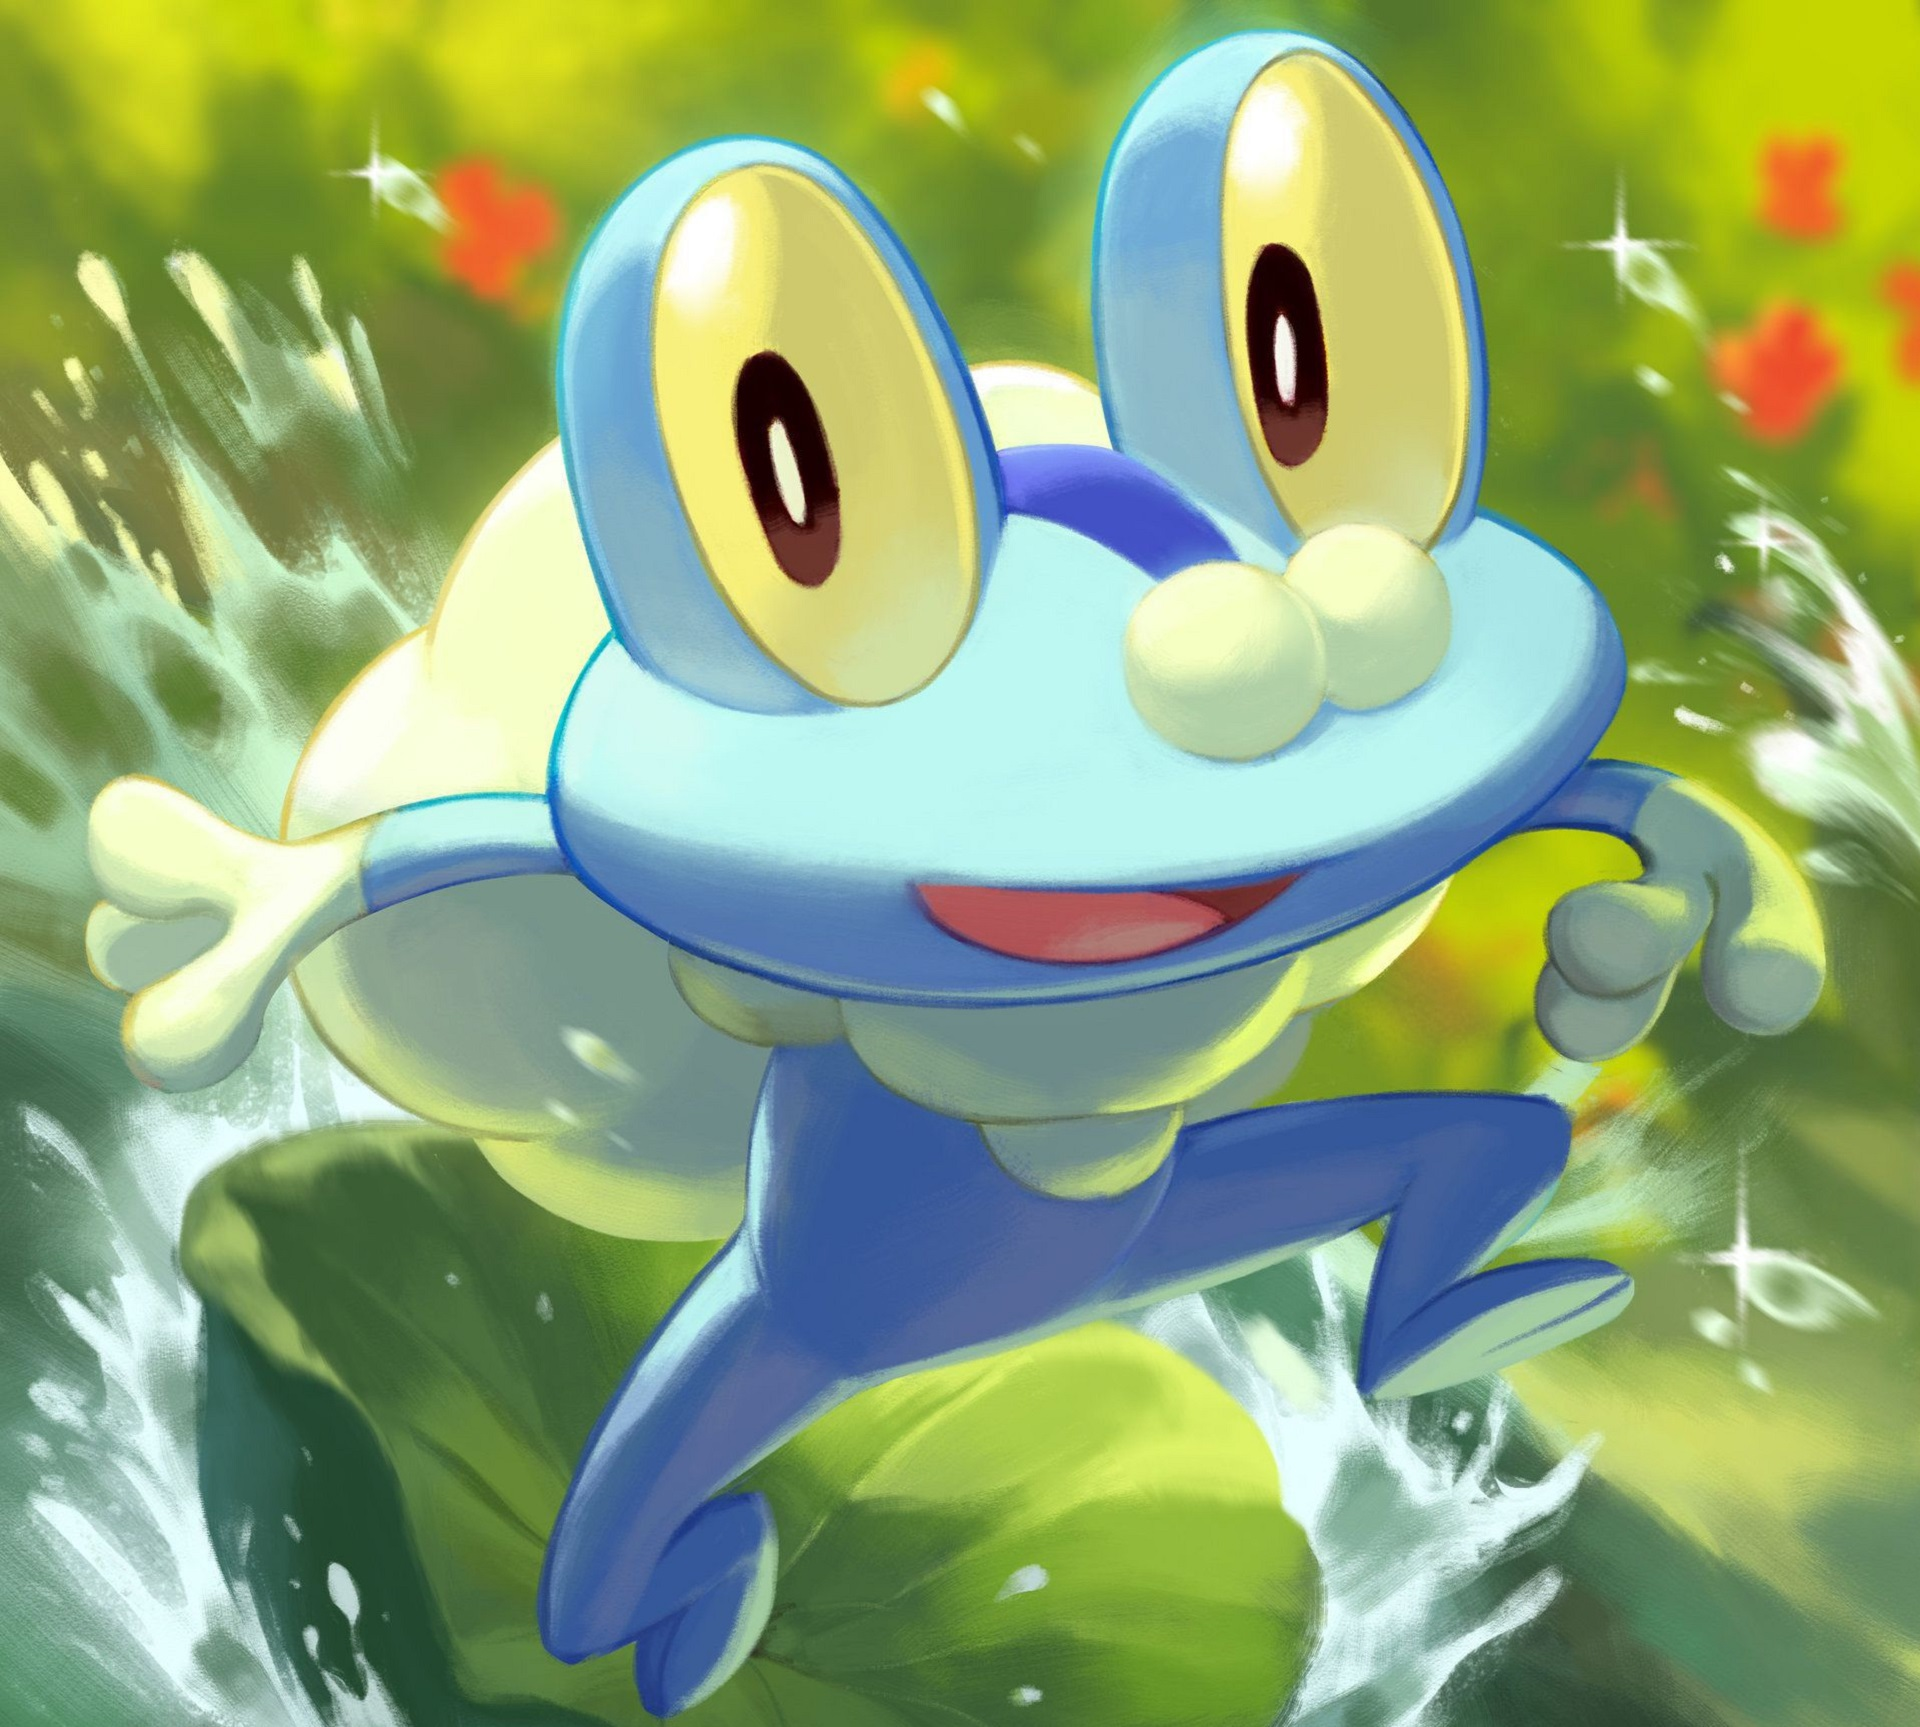 froakie wallpapers images photos pictures backgrounds